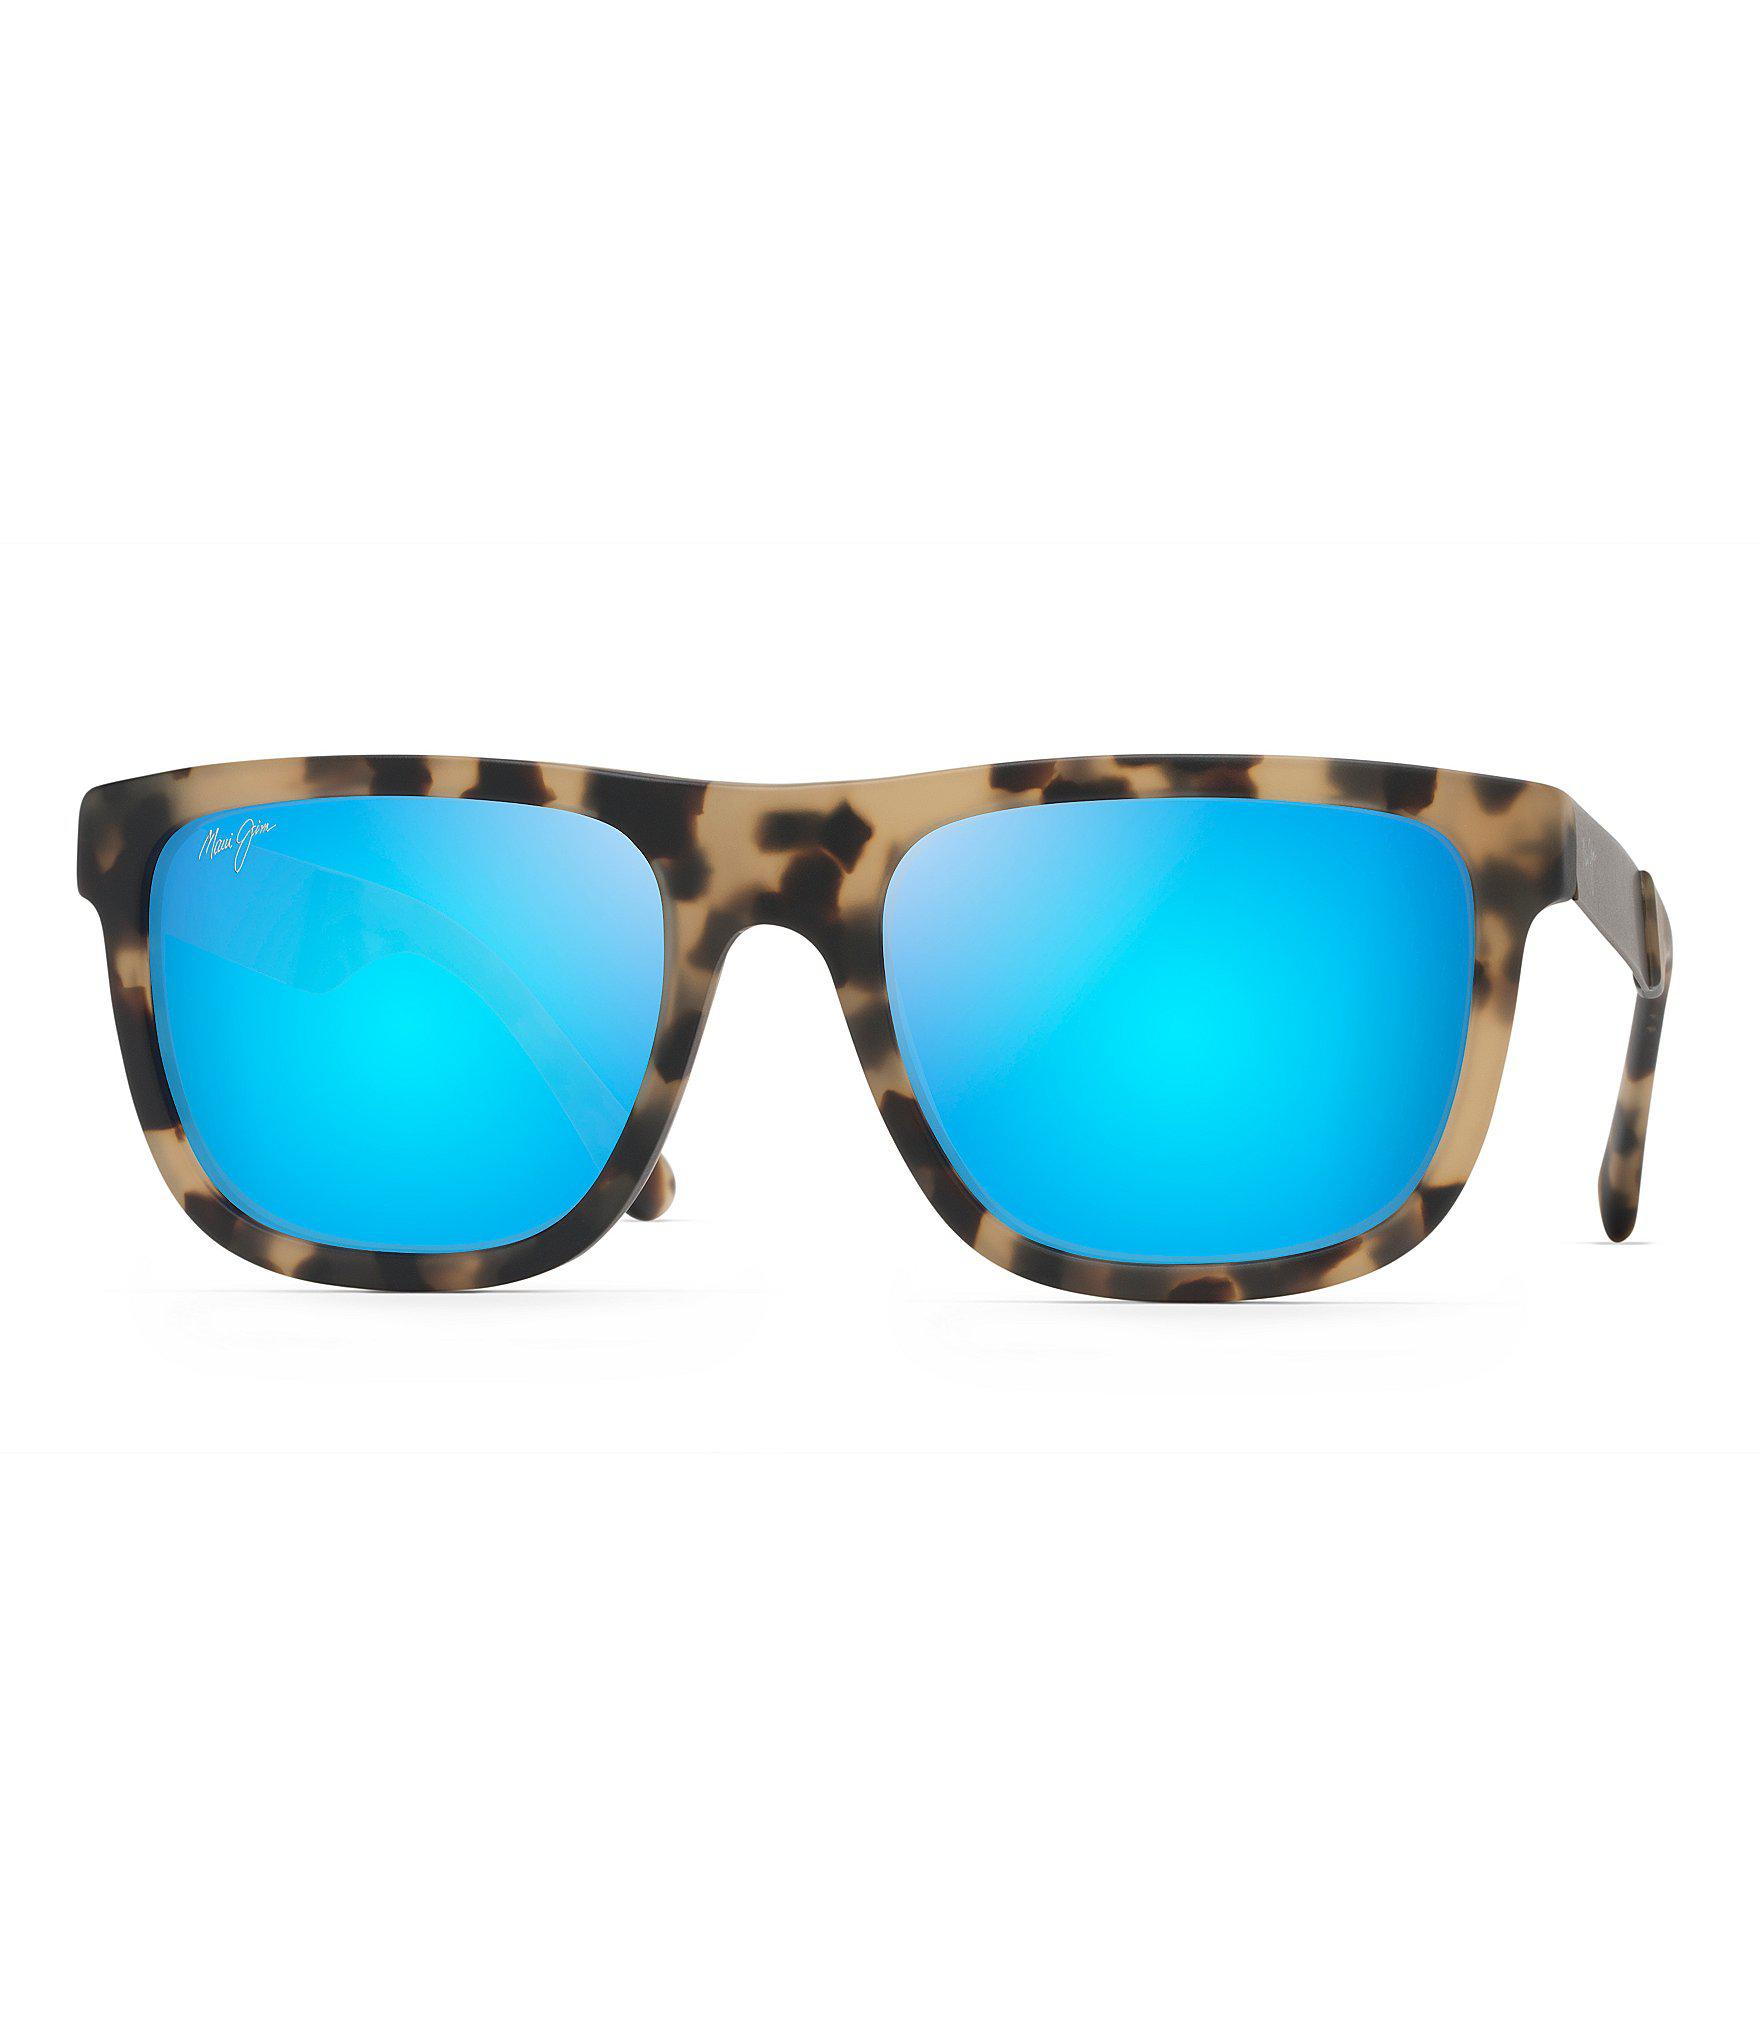 c91d0f8a6c Lyst - Maui Jim Talk Story Polarized Sunglasses in Blue for Men